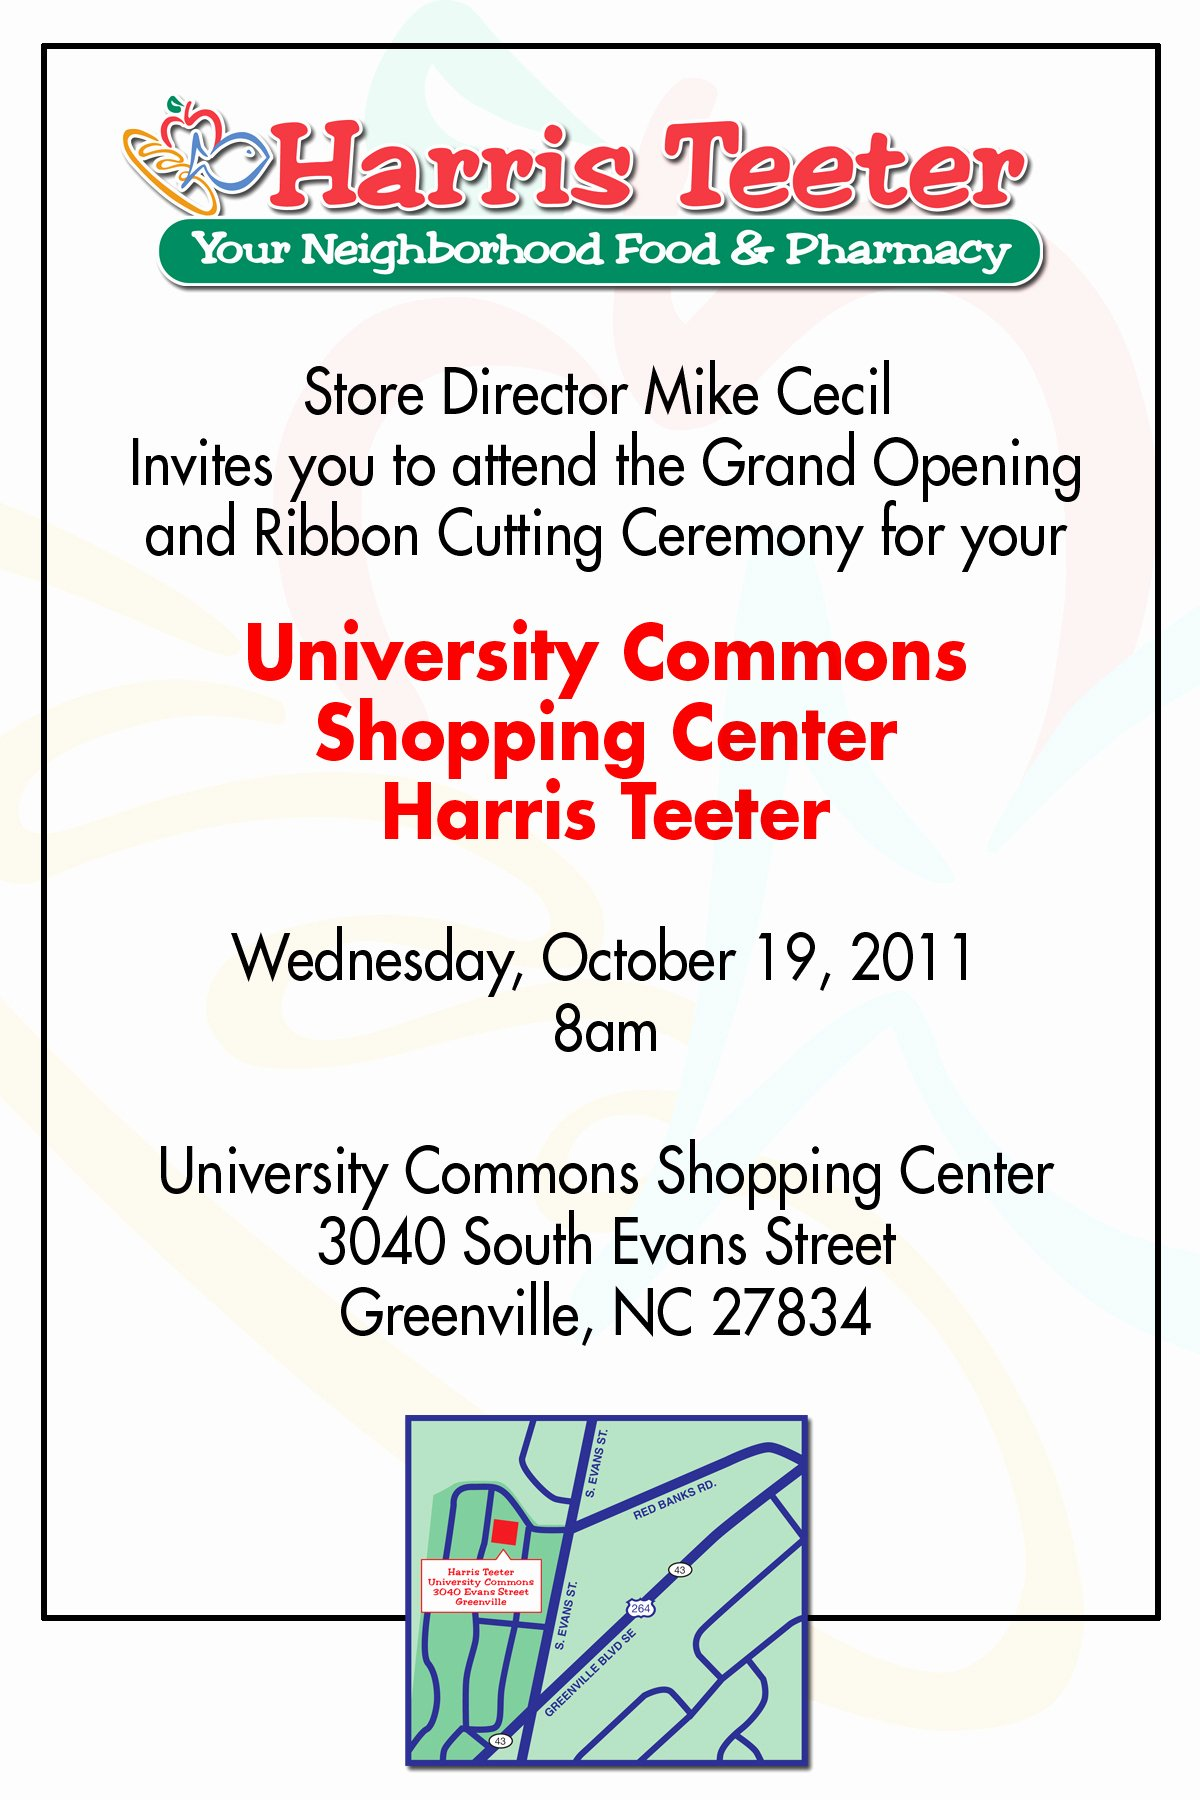 Grand Opening Invitation Template Awesome Grand Opening Of Harris Teeter In Greenville N C